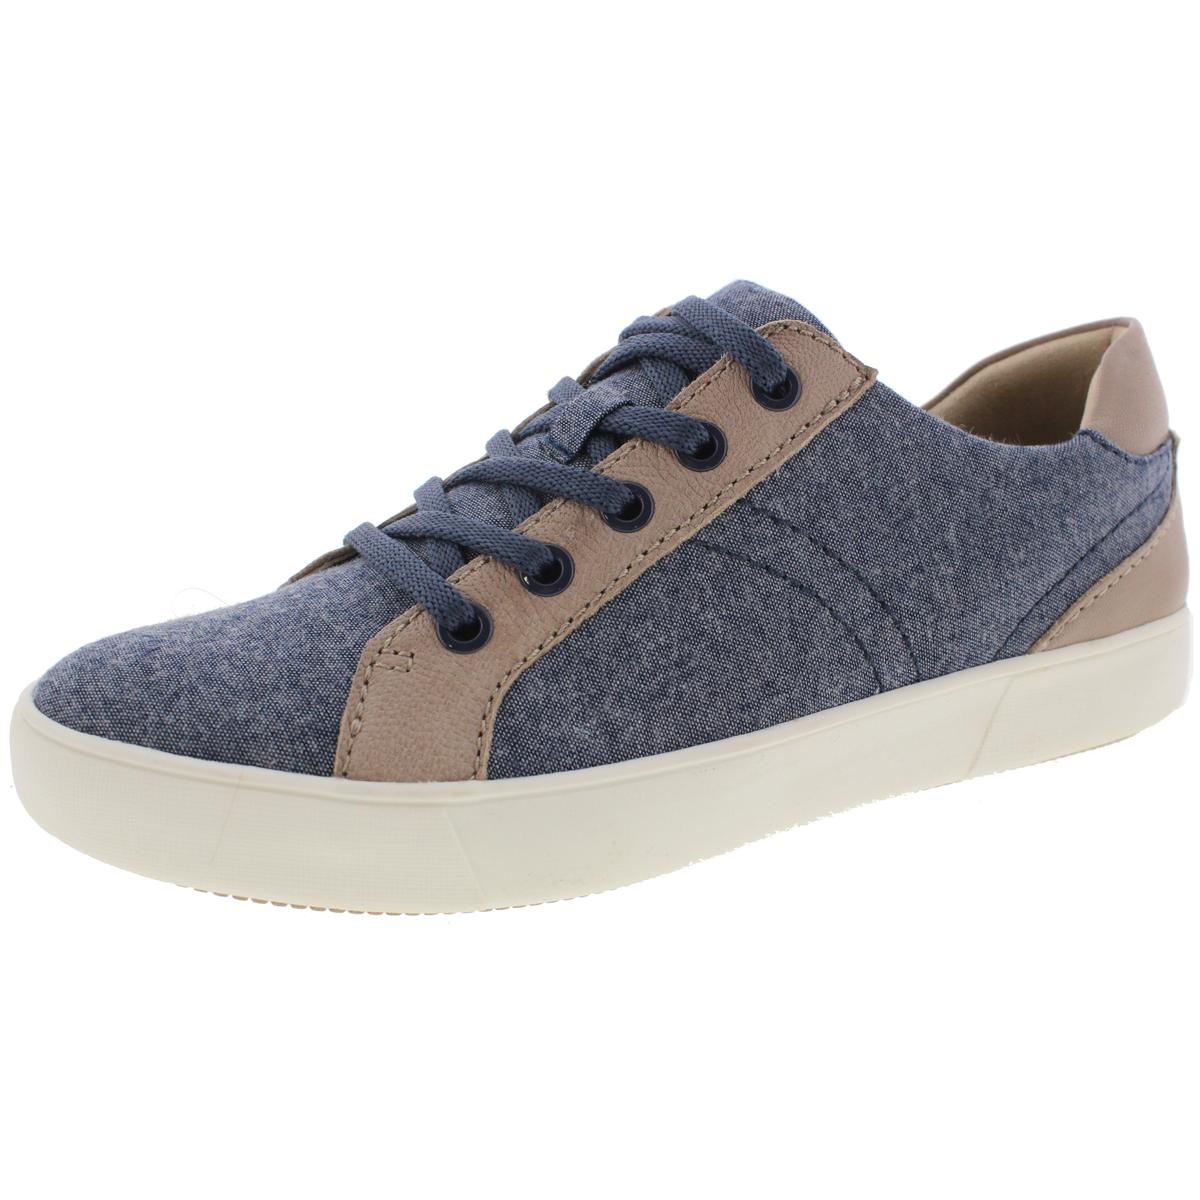 Naturalizer Womens Morrison  Canvas Leather Fashion Sneakers